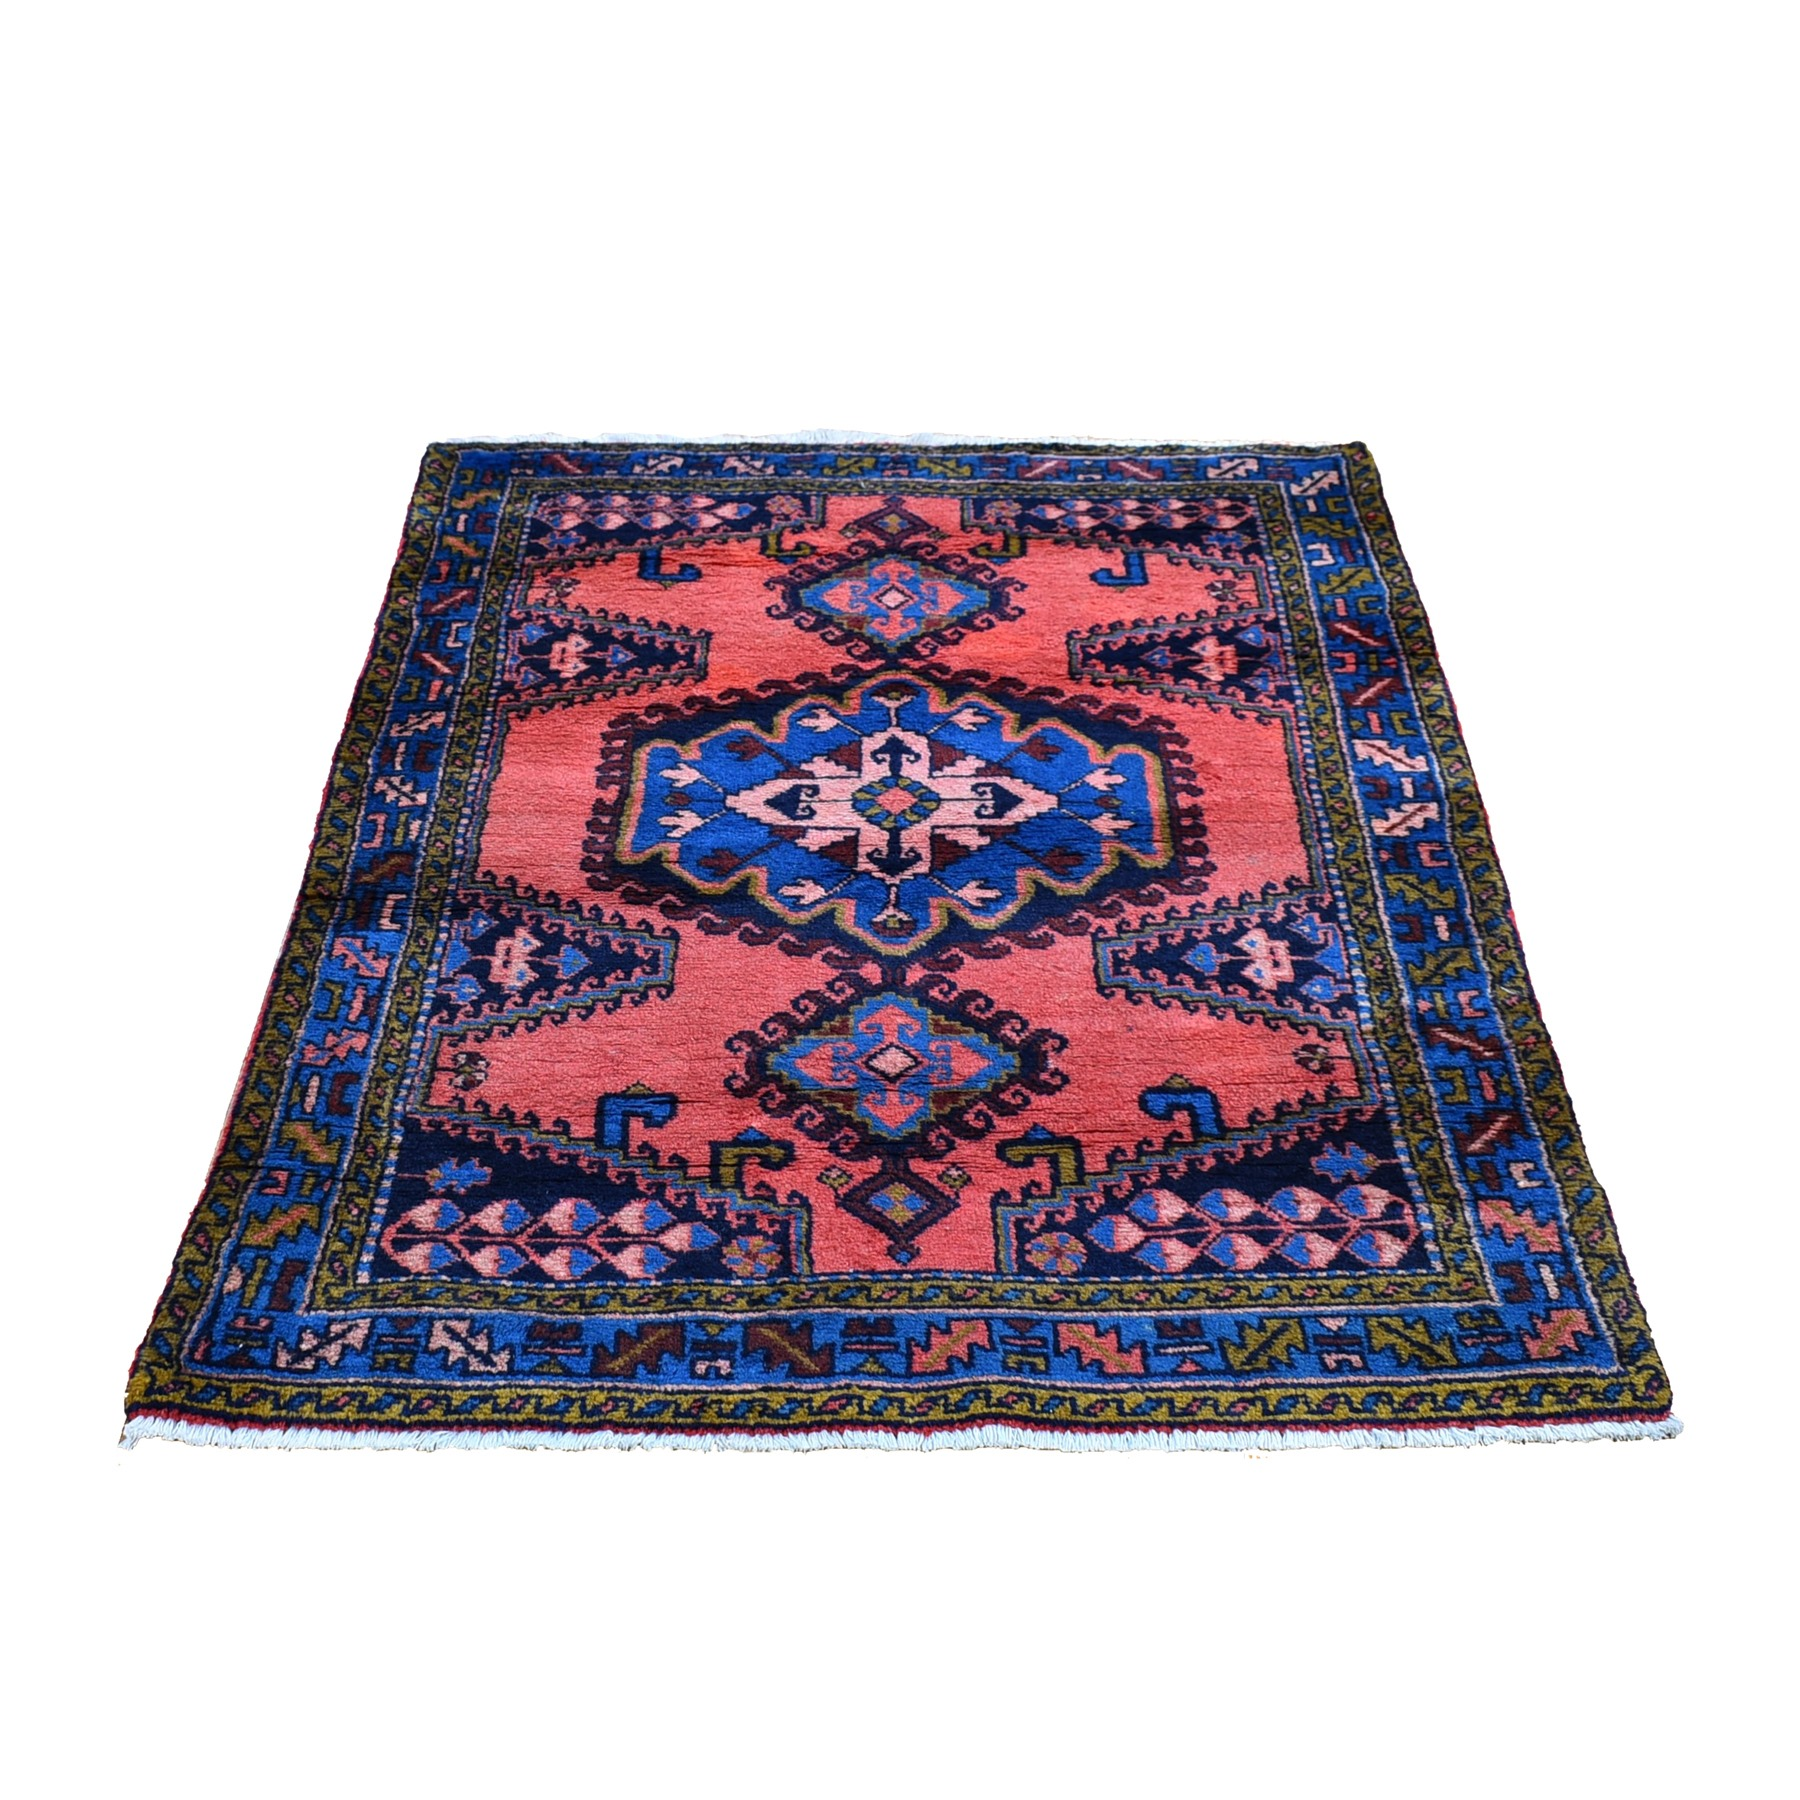 """3'4""""x5'1"""" Pink Natural Wool Excellent Condition Full Pile Vintage Persian Viss Hand Knotted Oriental Rug"""